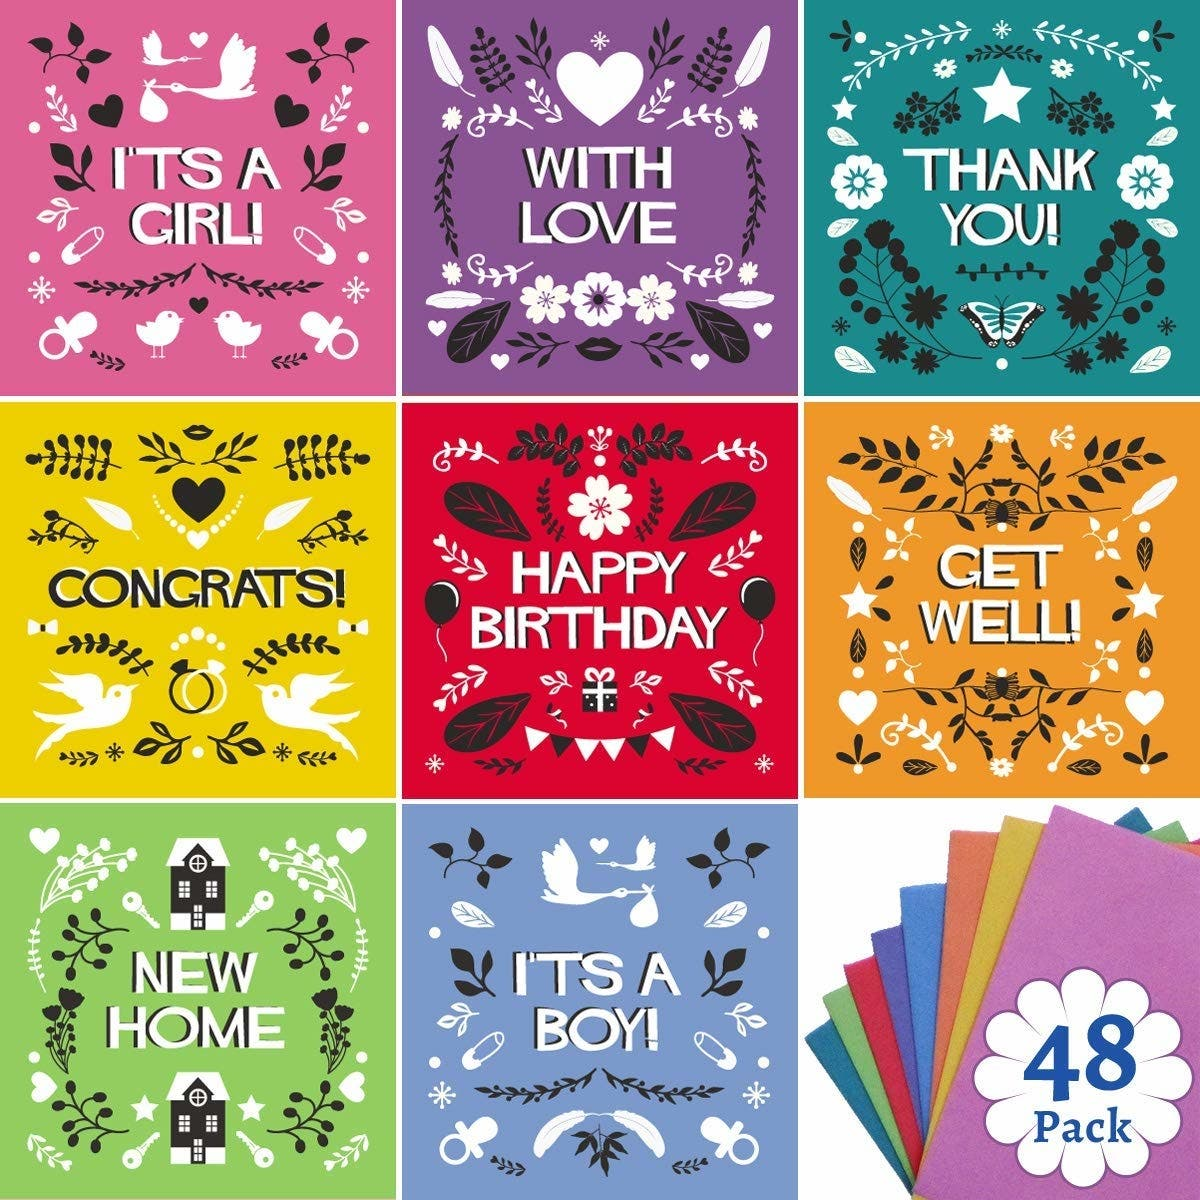 This greeting card set has you covered for every occasion dealtown it contains birthday cards thank you cards congratulatory cards its a boy and its a girl cards get well cards with love cards and even new m4hsunfo